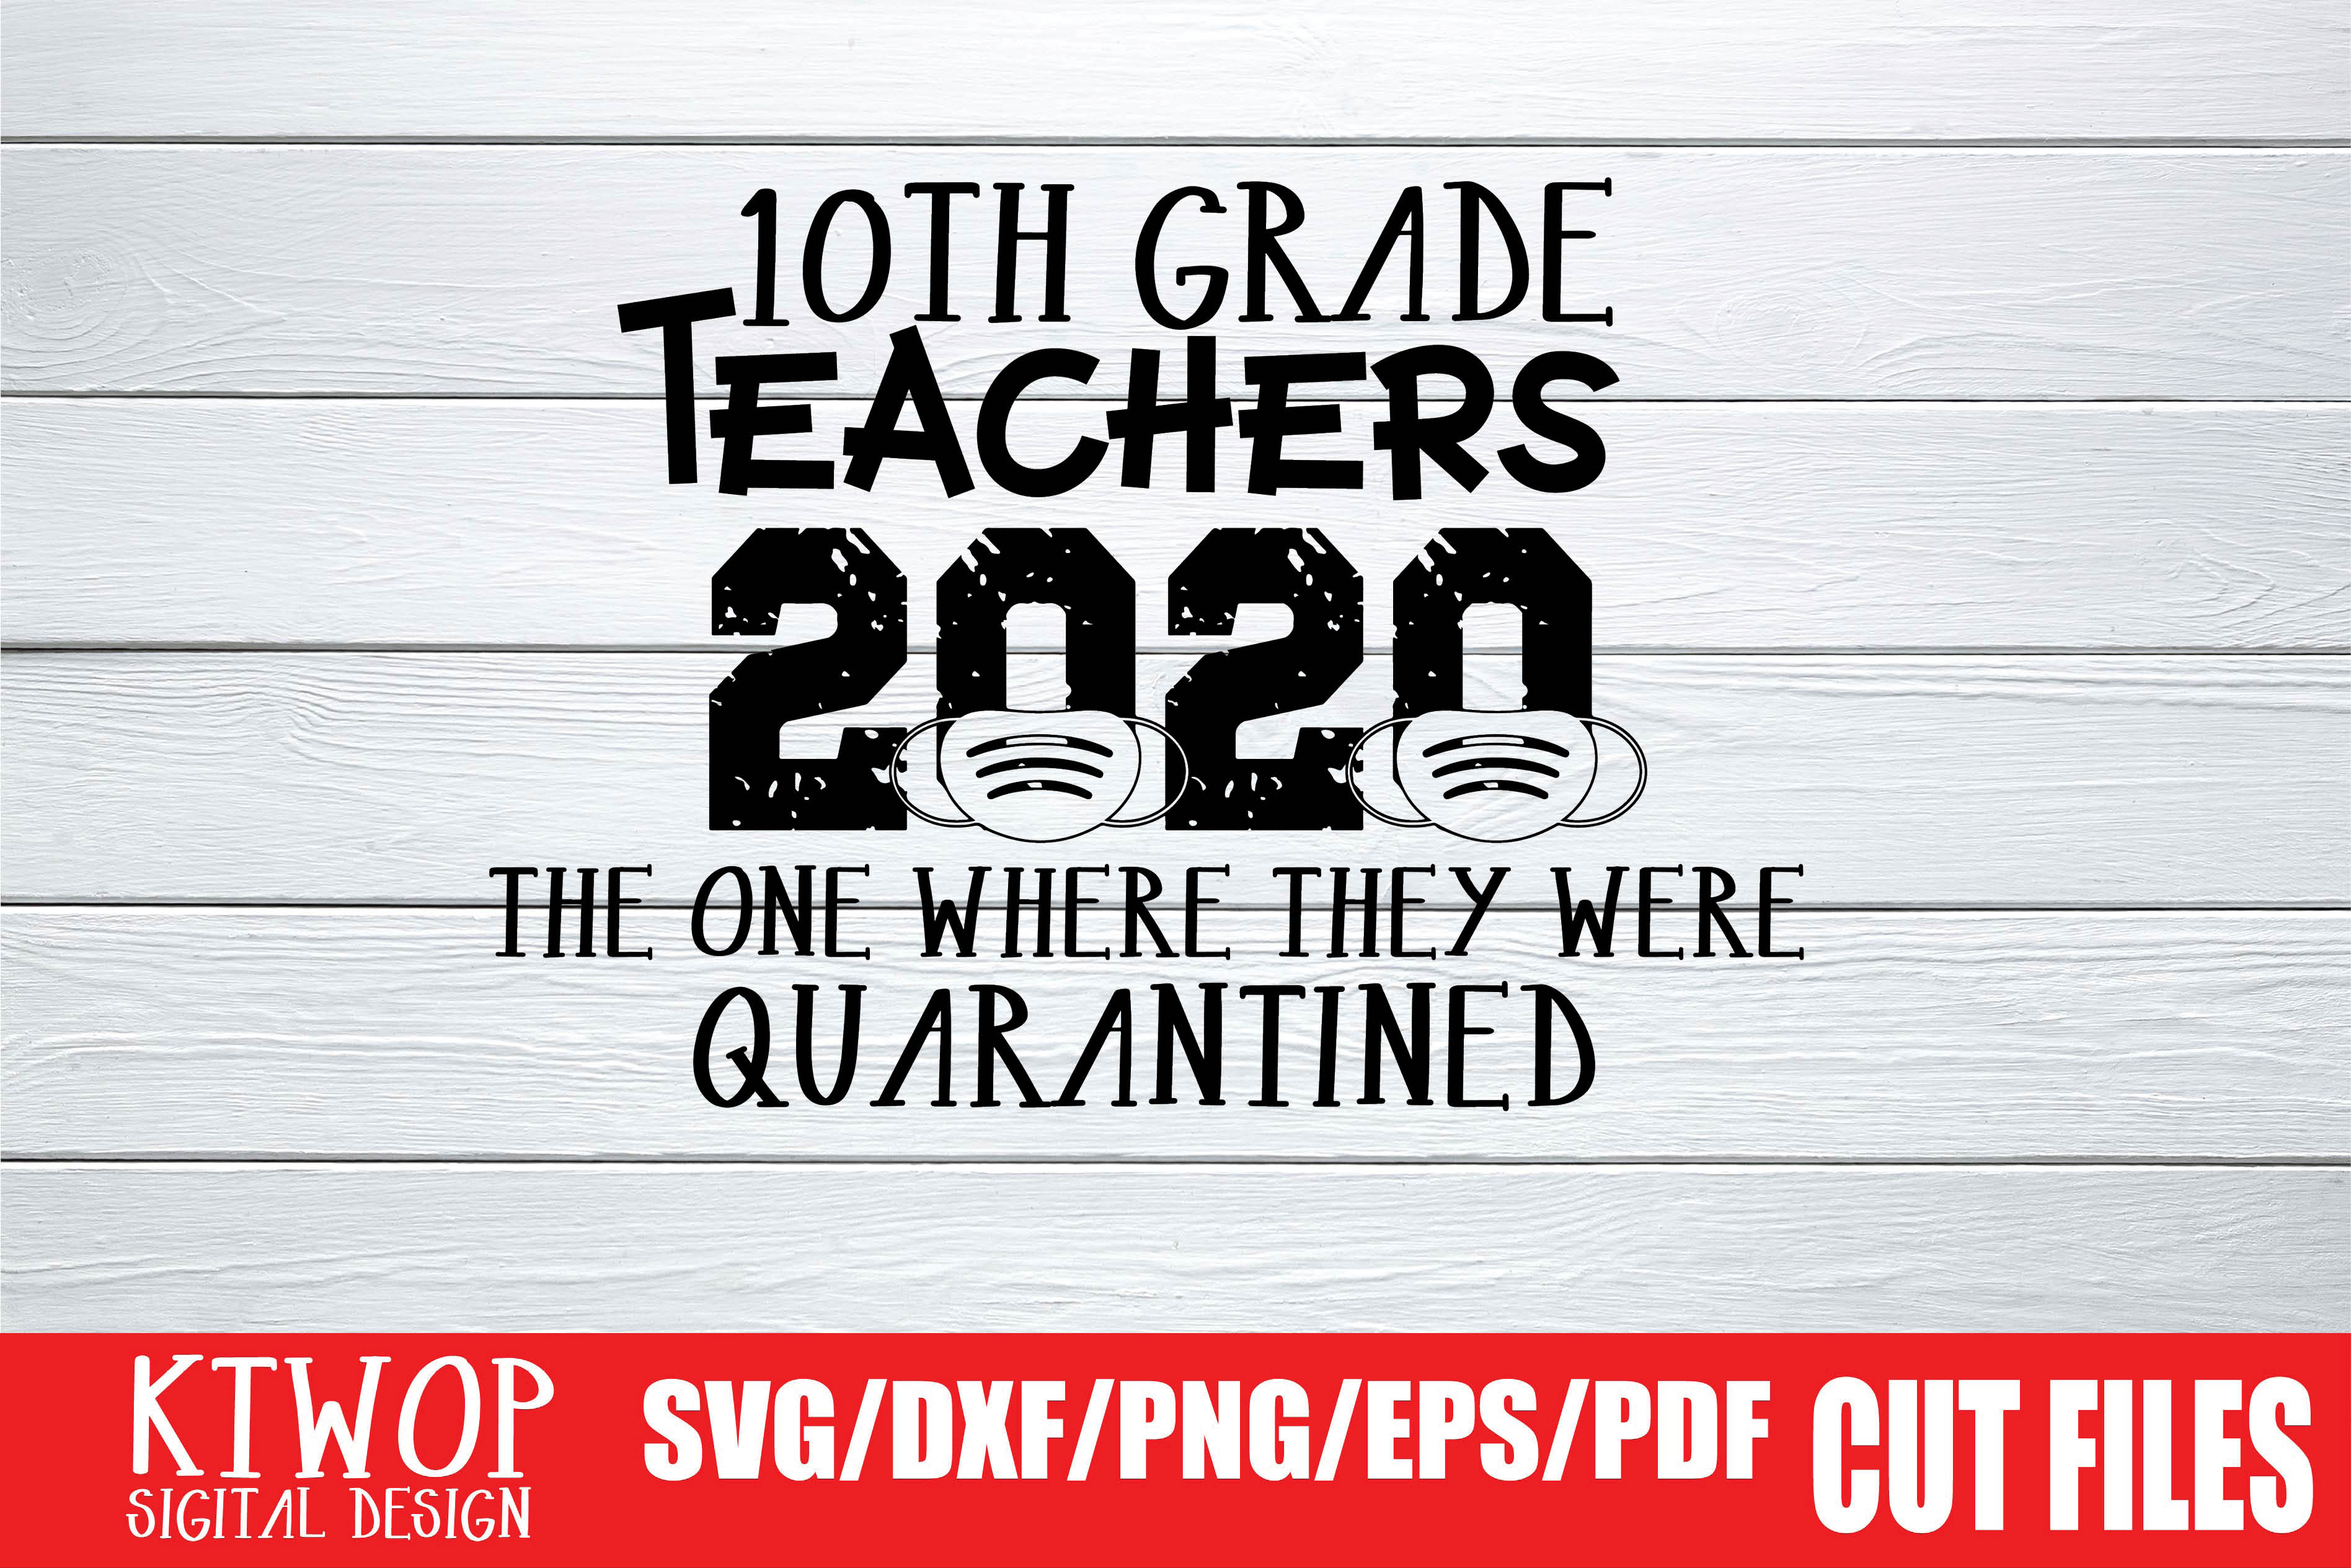 Download Free 10th Grade Teacher Quarantine 2020 Graphic By Ktwop Creative for Cricut Explore, Silhouette and other cutting machines.